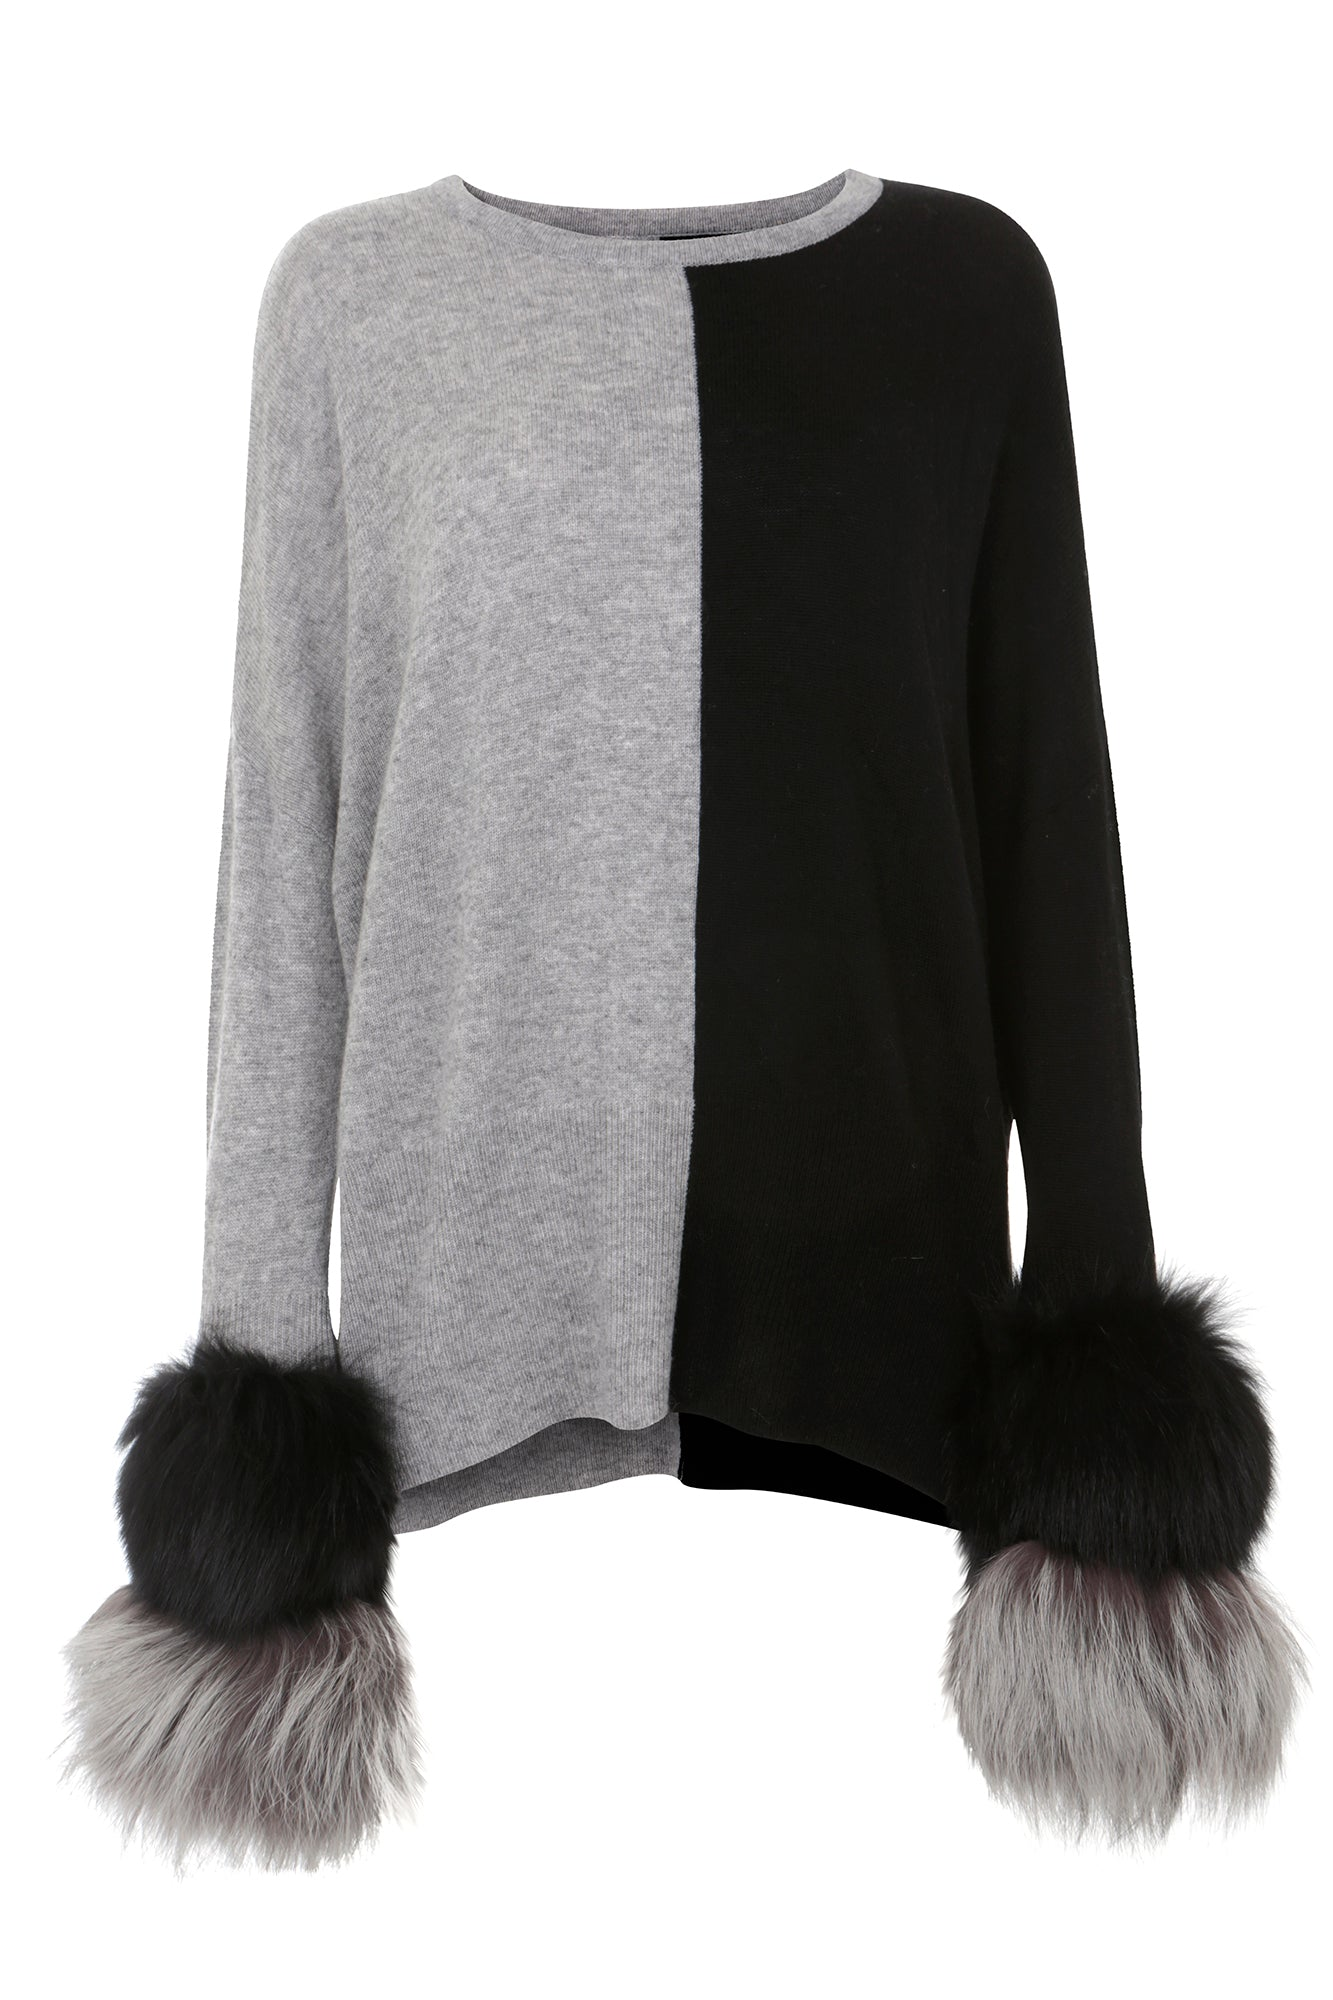 Black & Grey Two-Tone Fur Cuff Sweater